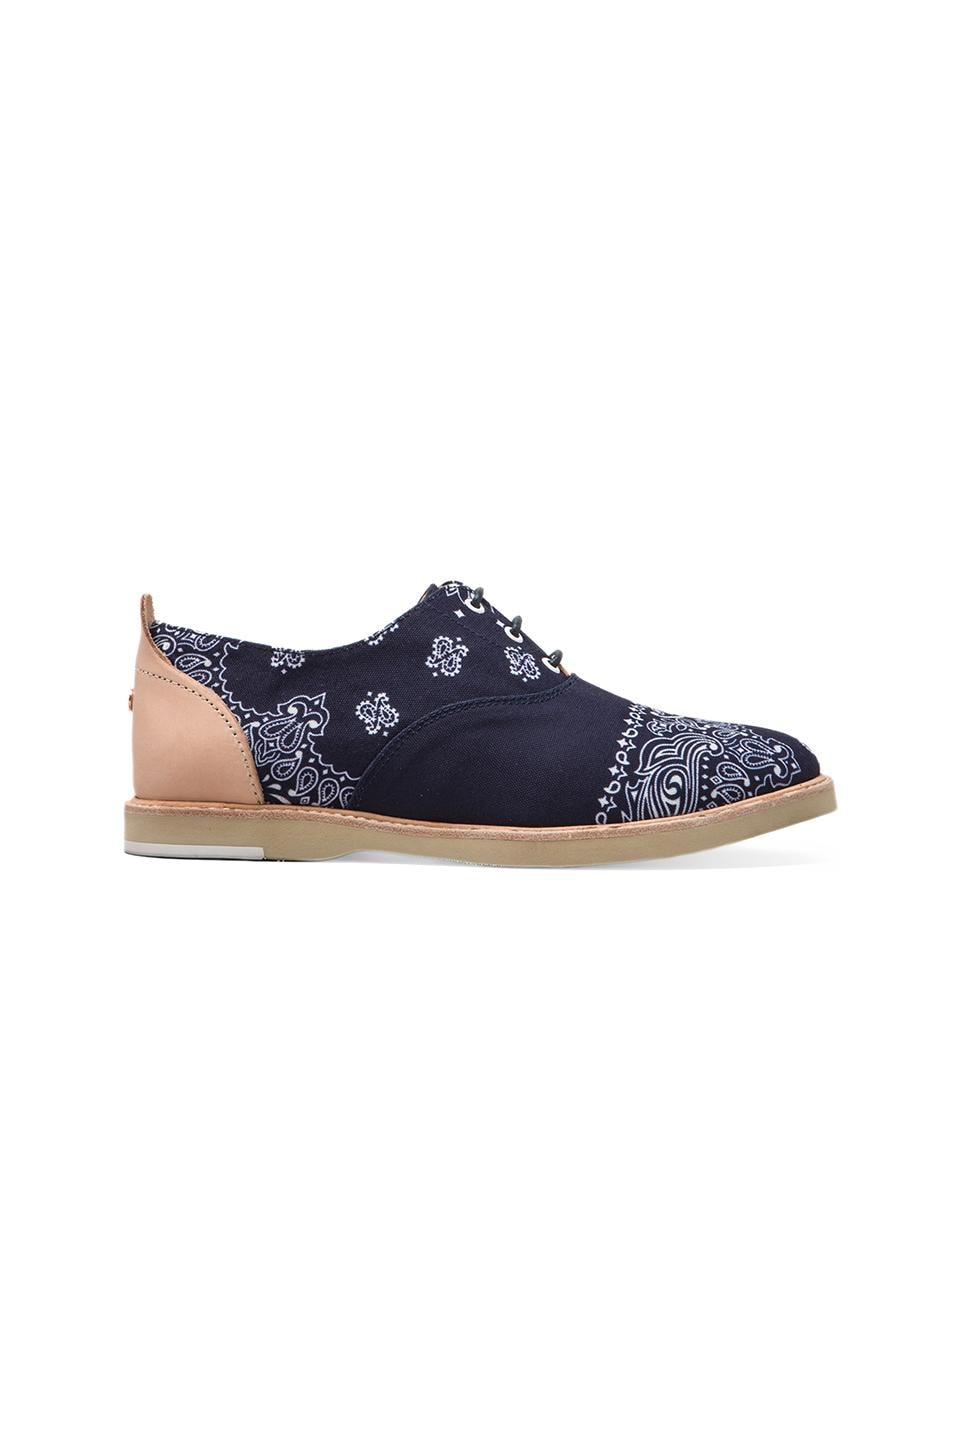 Thorocraft Hampton in Bandana Navy